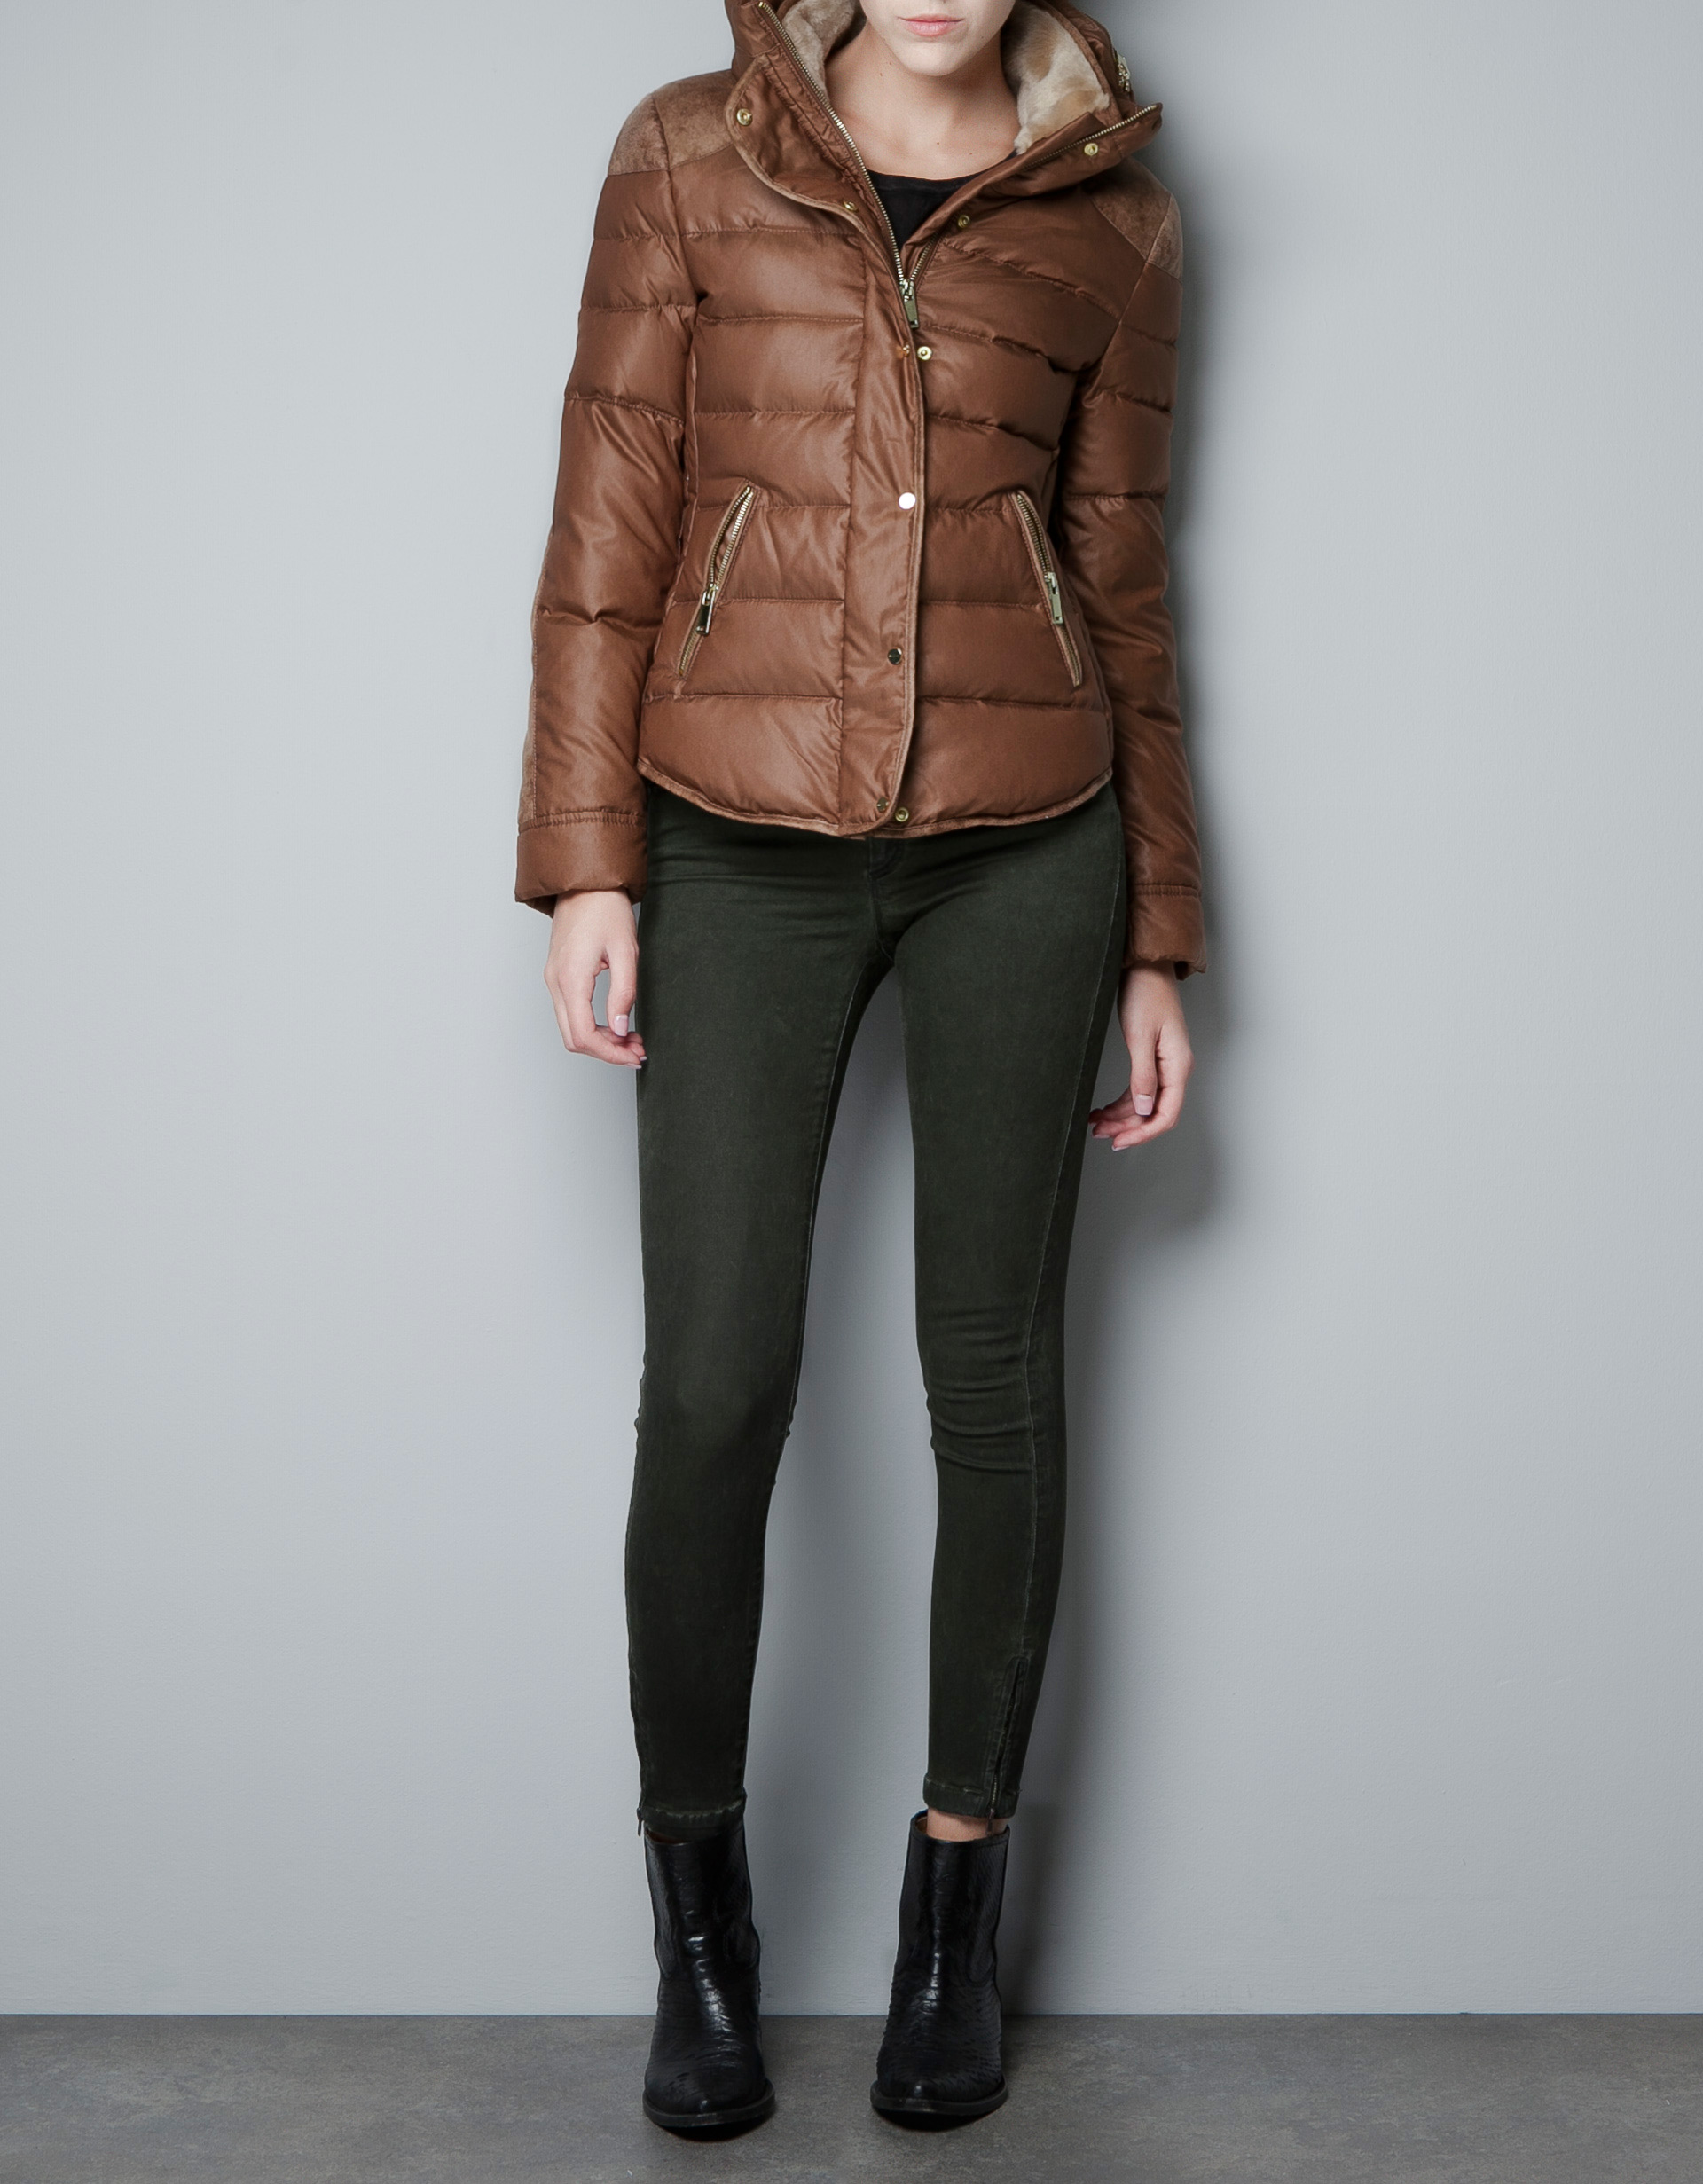 Zara Combined Short Puffer Jacket in Brown | Lyst